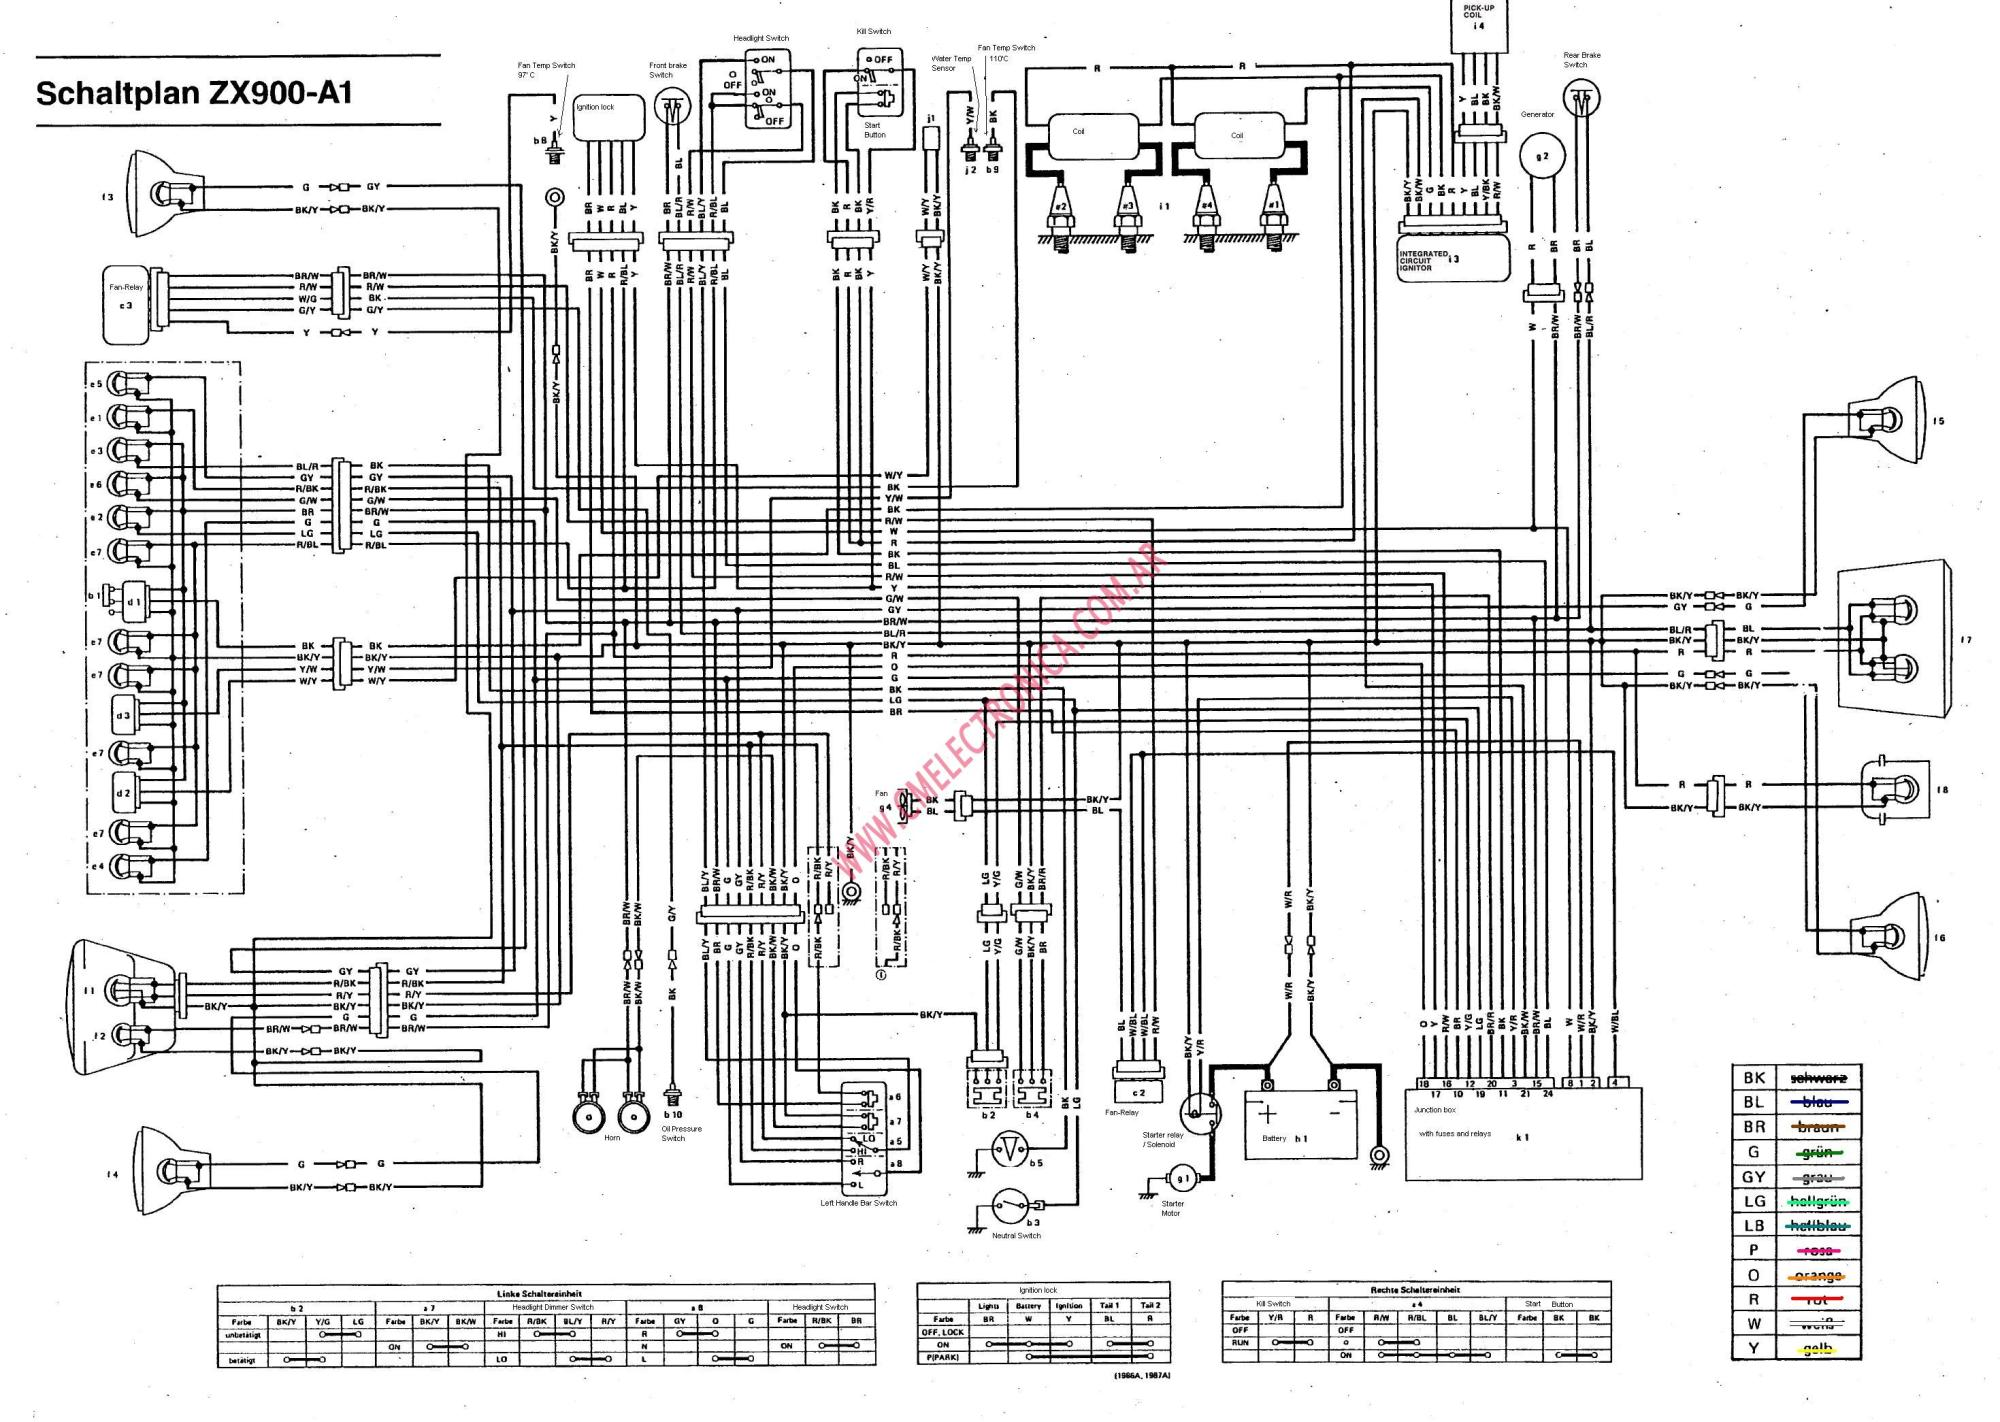 hight resolution of 1995 kawasaki 900 zxi ignition diagram wiring schematic schematics rh seniorlivinguniversity co zxr